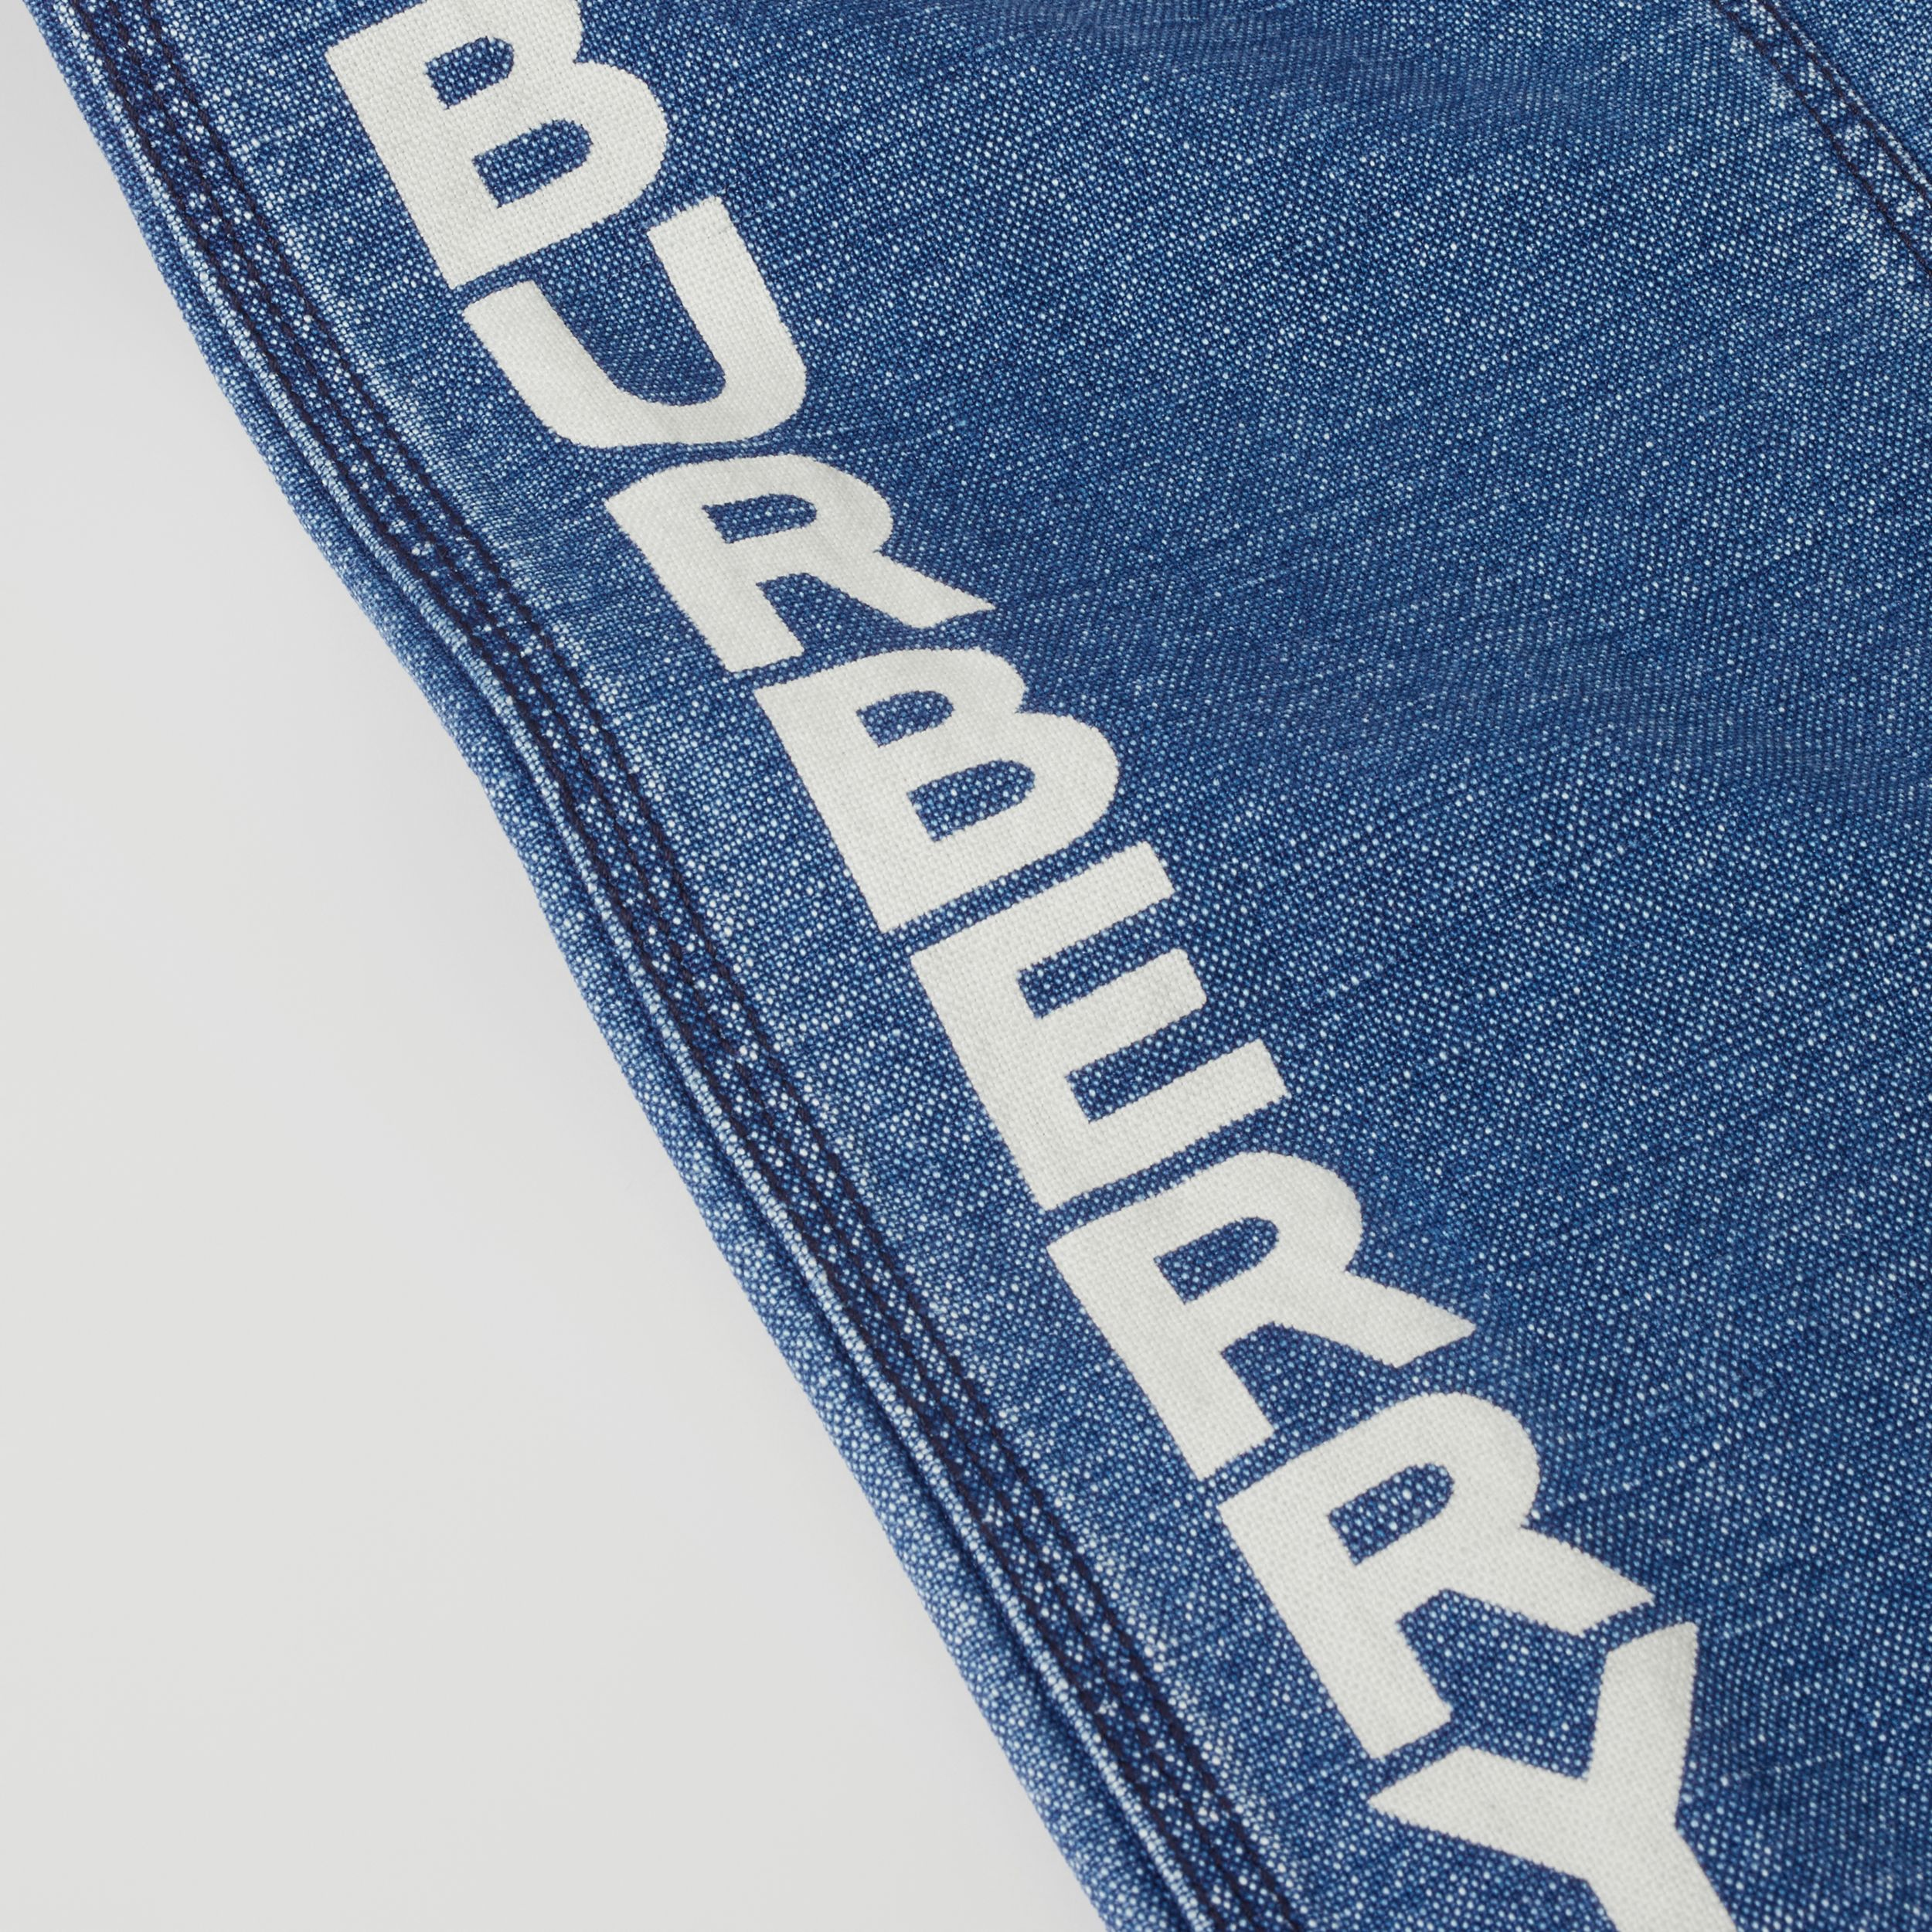 Logo Print Japanese Denim Jeans in Indigo - Girl | Burberry United Kingdom - 2